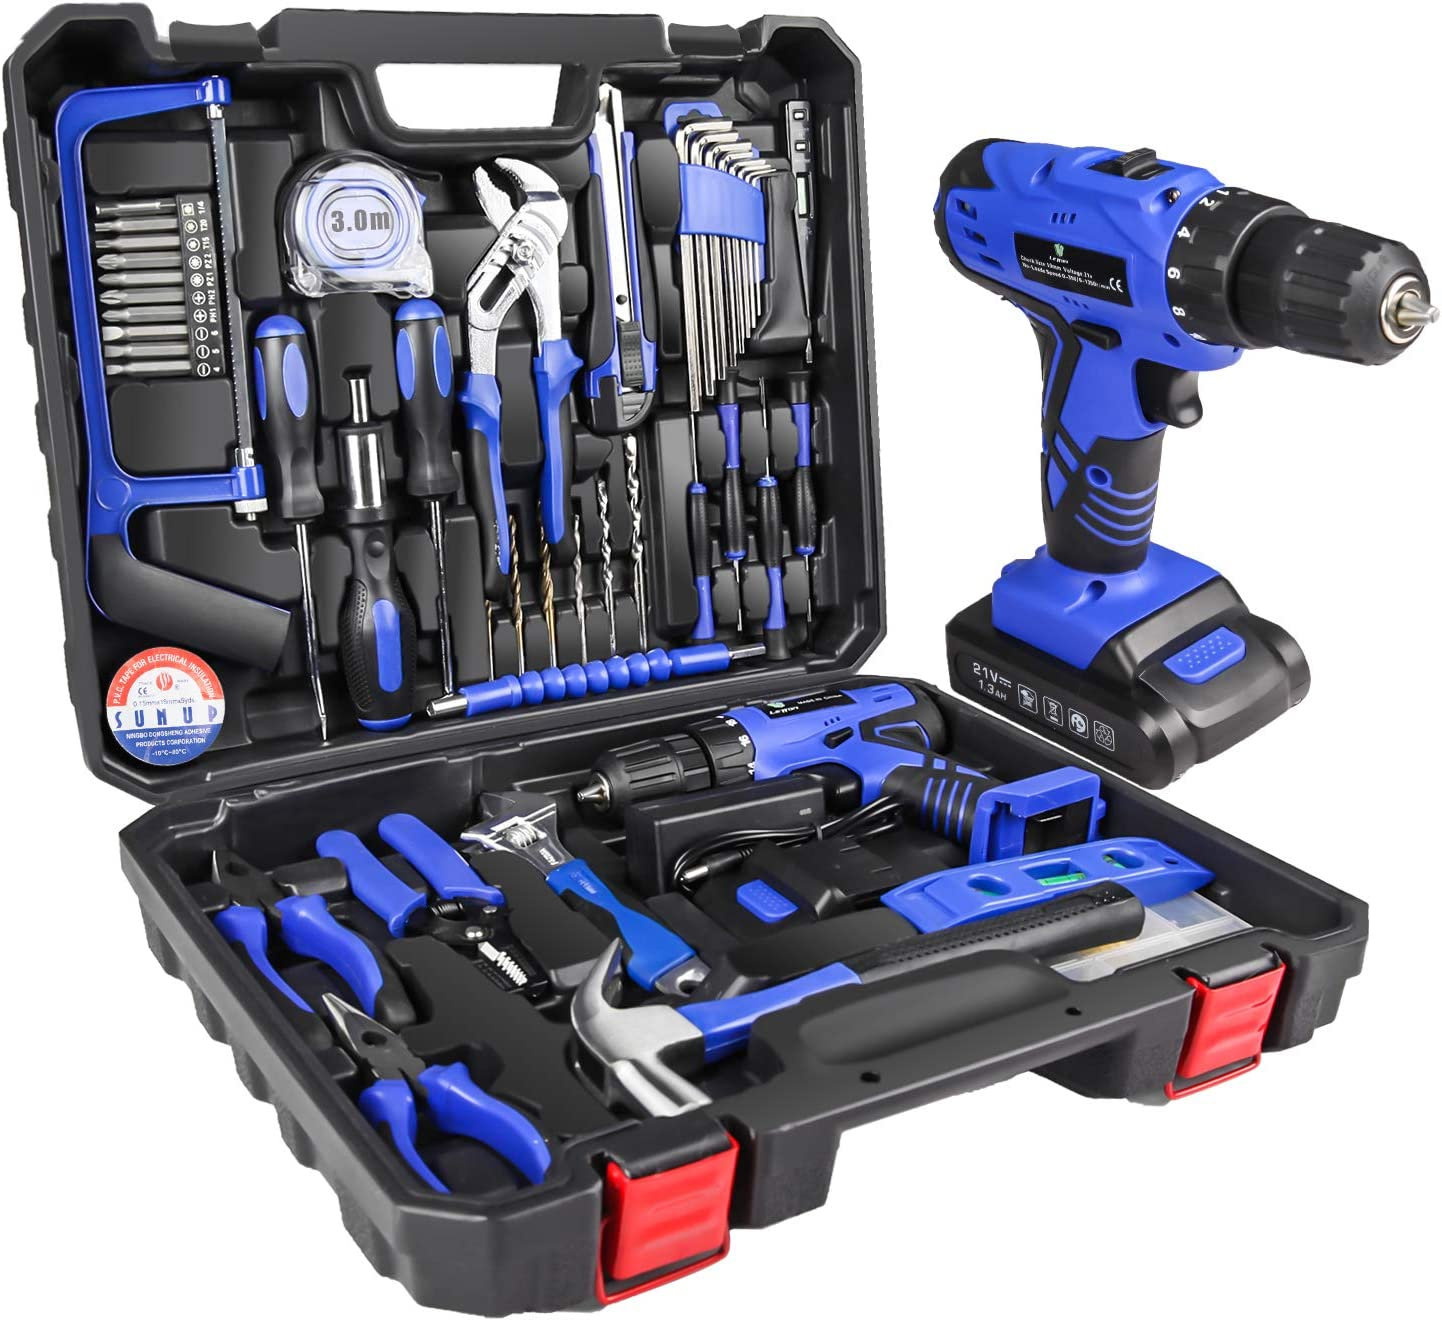 LETTON Power Tools Combo Kit with Professional Household Hand Tools Drill Set with 21V Lithium Power Tool for Home Cordless Repair Tool Kit Set (Blue)